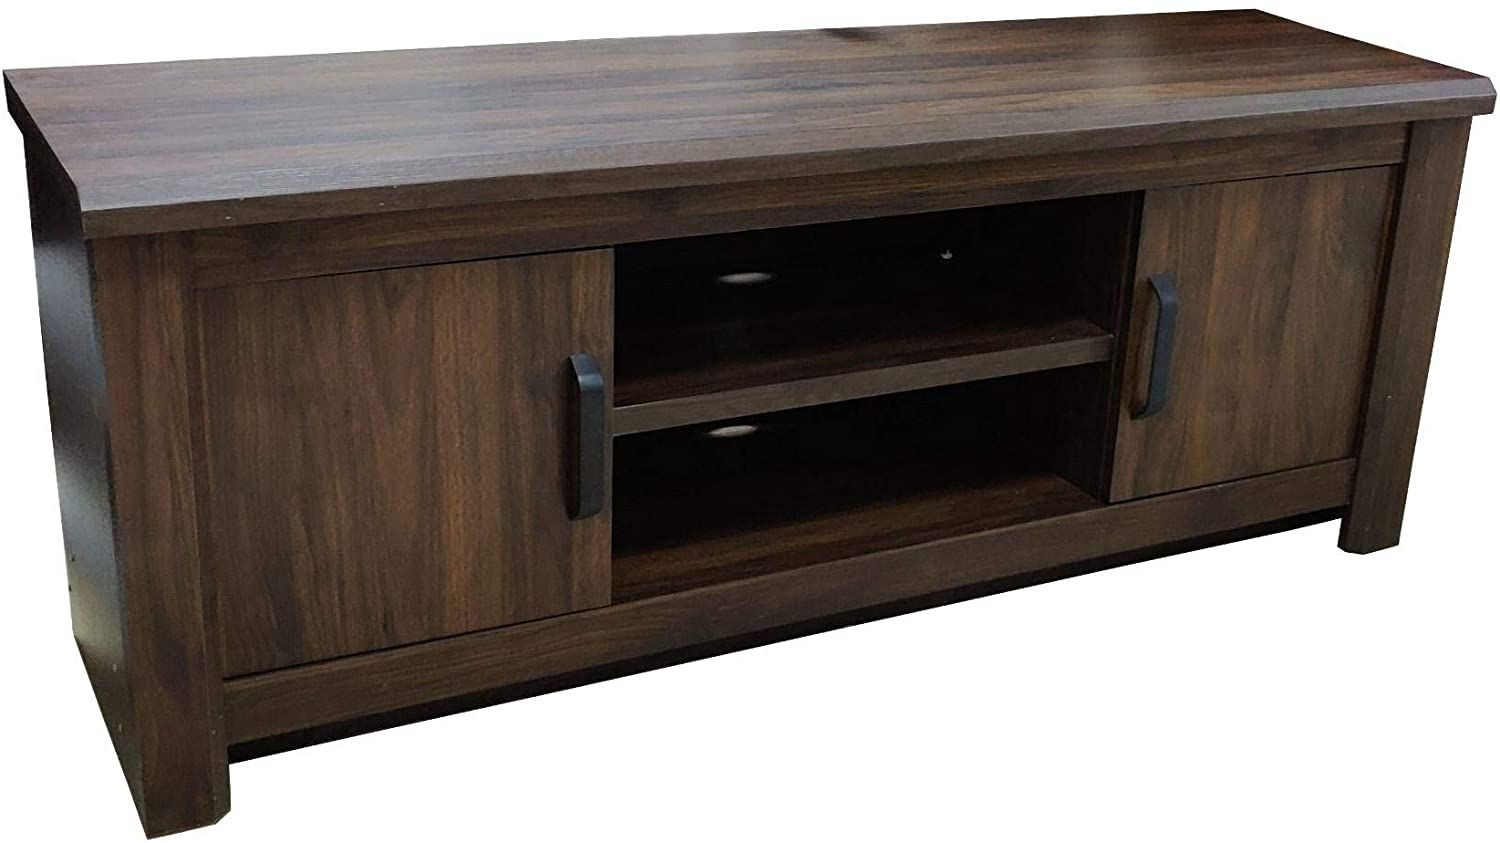 Tv Cabinet Lcd Rack 65 Inch Tv Table 160 Cm Walnut Color Sbf 1814 Sbf Furniture Malaysia Tv Cabinets Cabinet Furniture